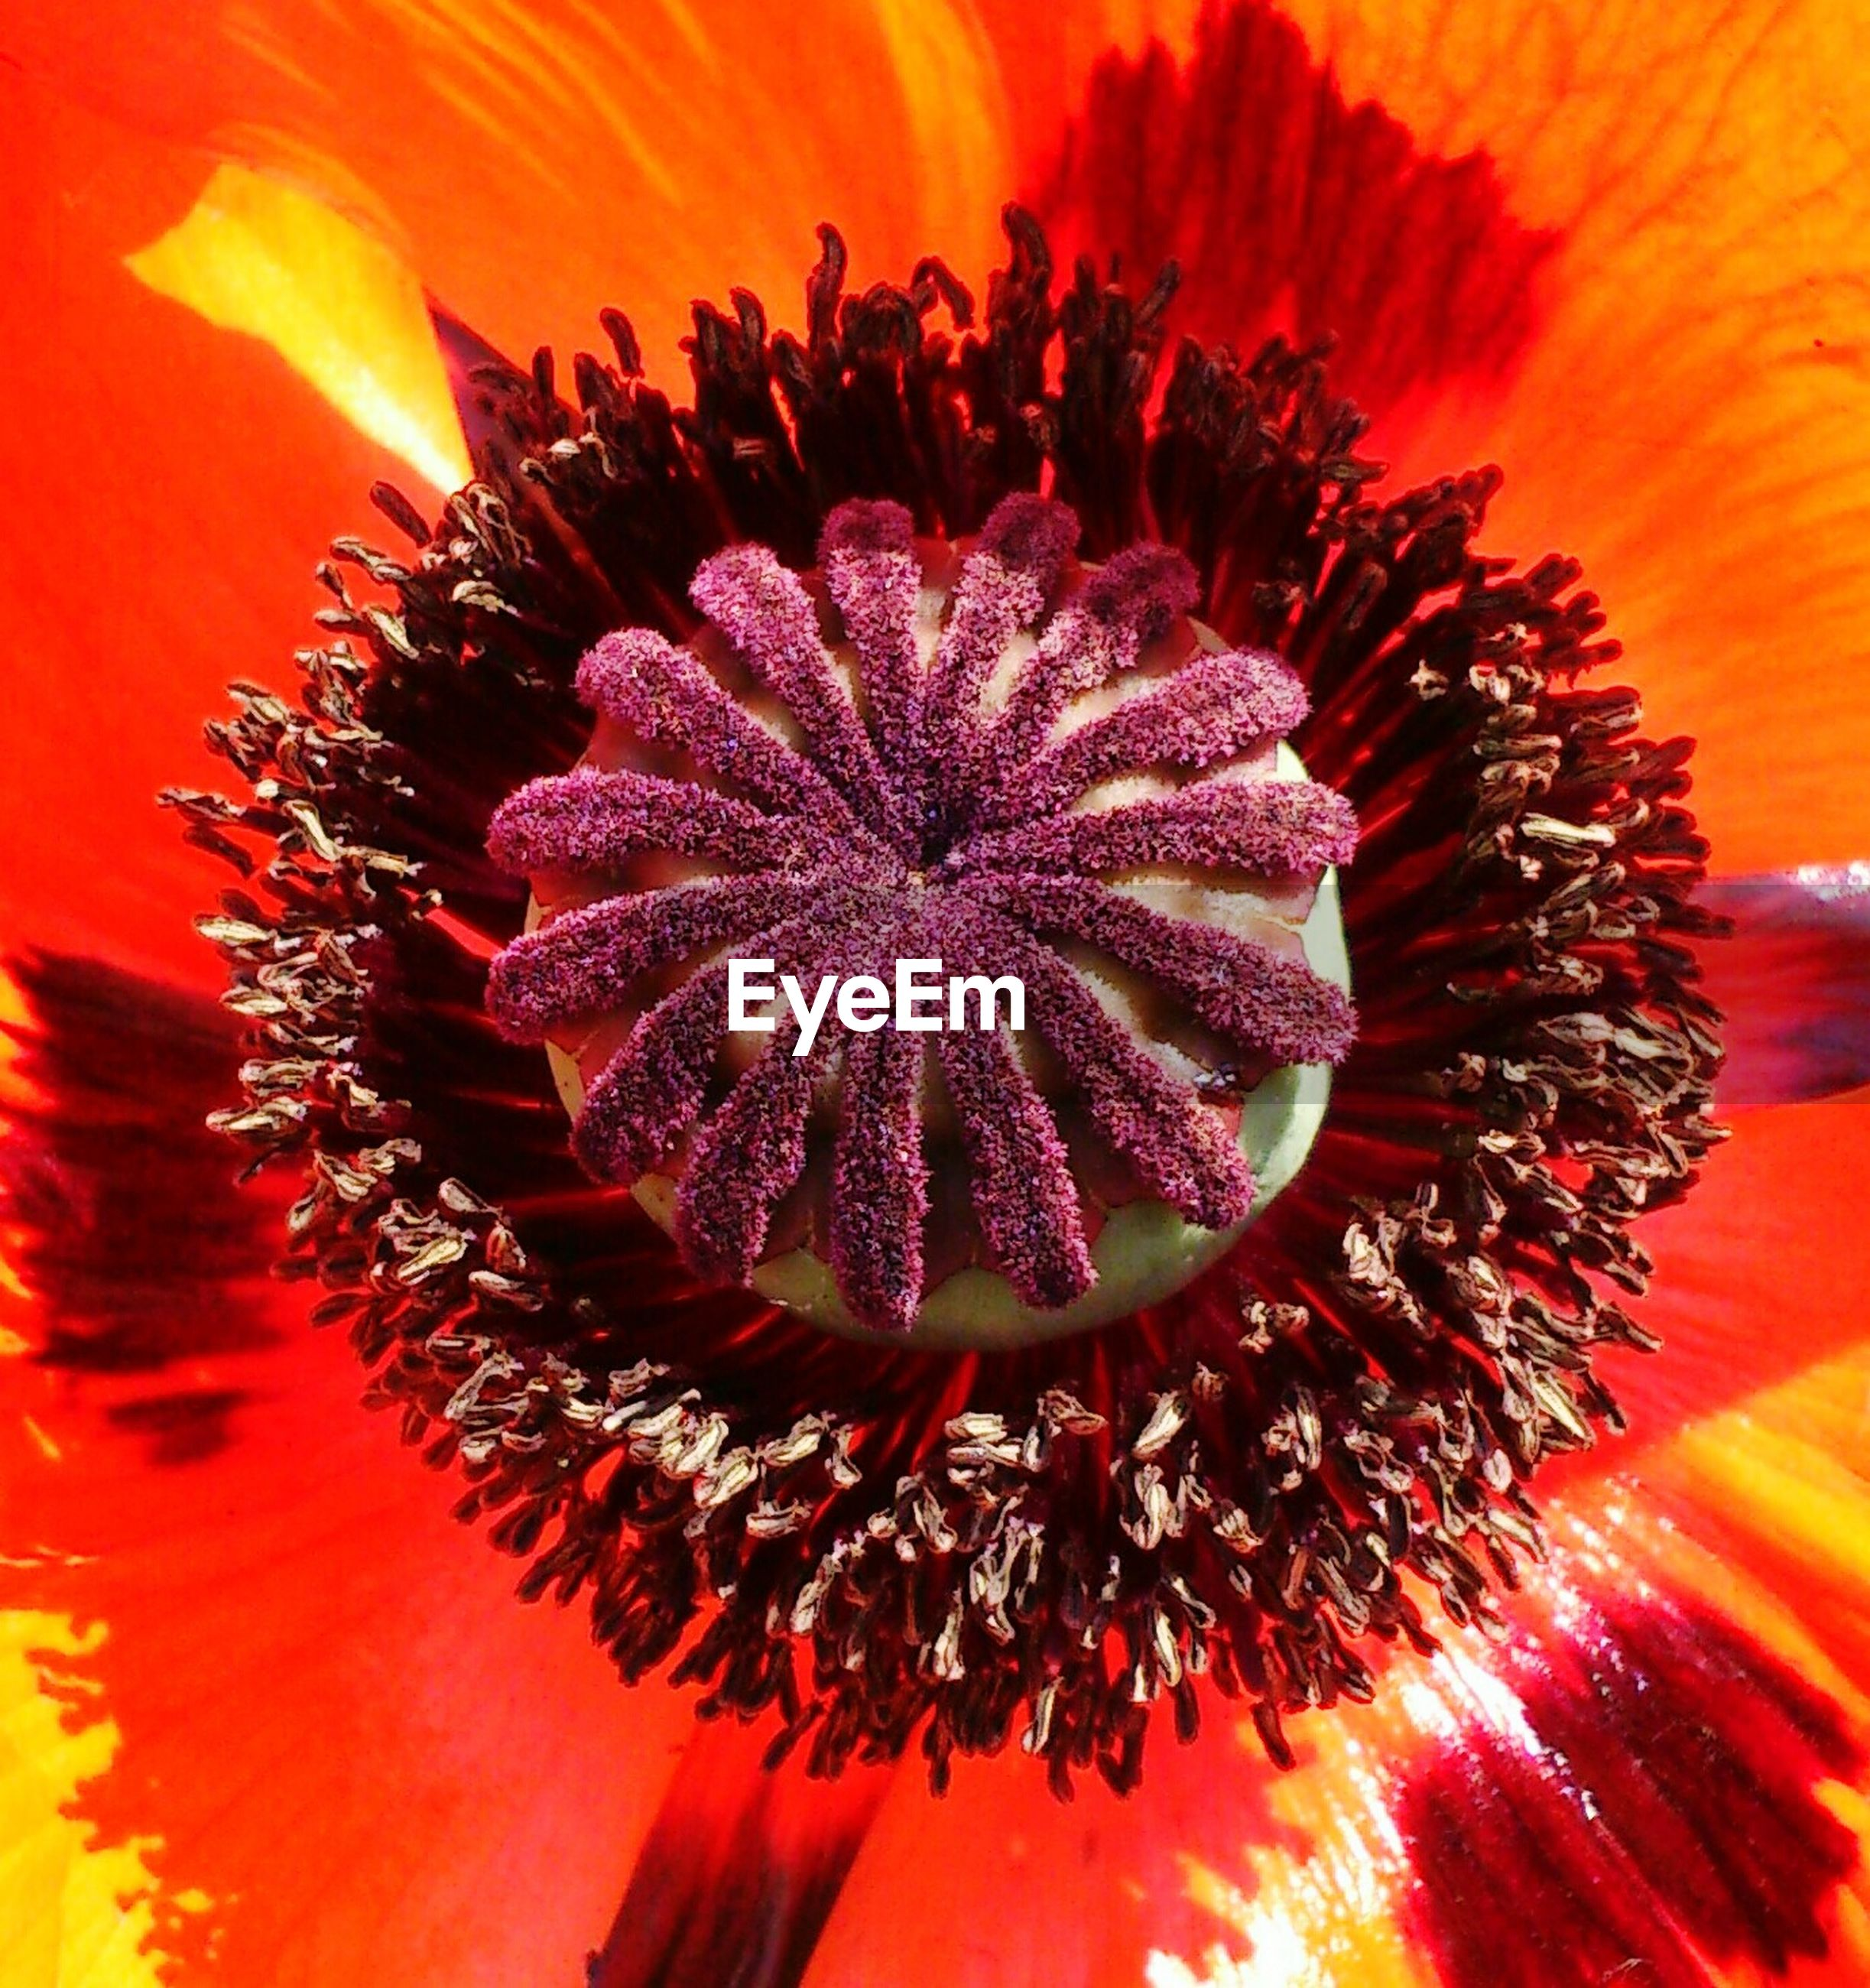 flower, flower head, petal, full frame, freshness, pollen, backgrounds, single flower, beauty in nature, red, orange color, close-up, fragility, nature, stamen, extreme close-up, blooming, vibrant color, growth, natural pattern